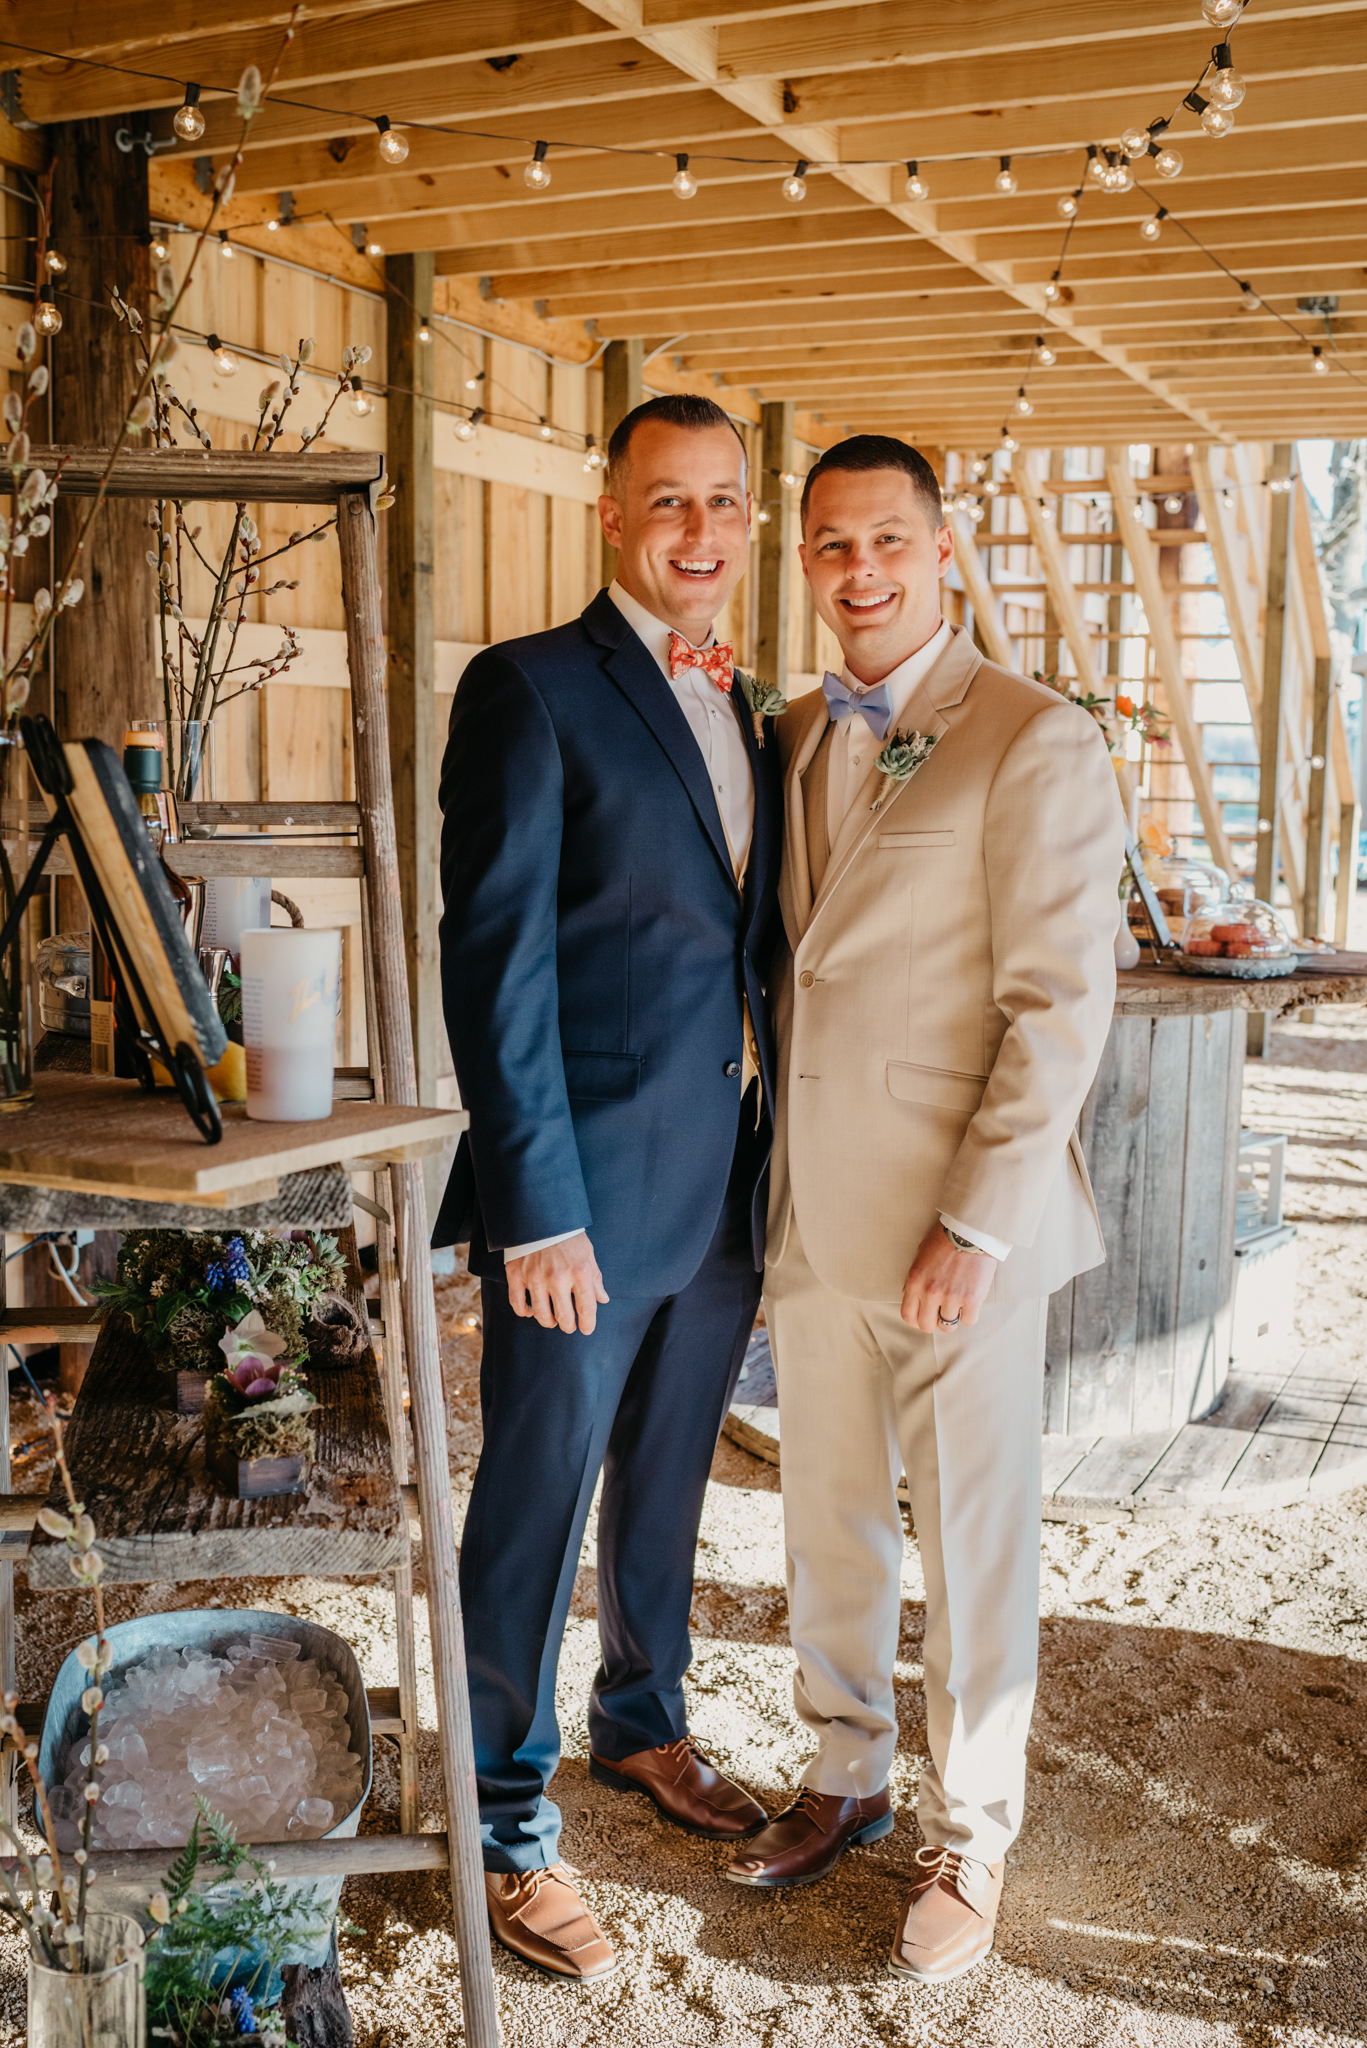 The grooms pose in their rustic farm reception decor during their styled engagement session with Rose Trail Images at Windy Hill Farm near Raleigh, NC.